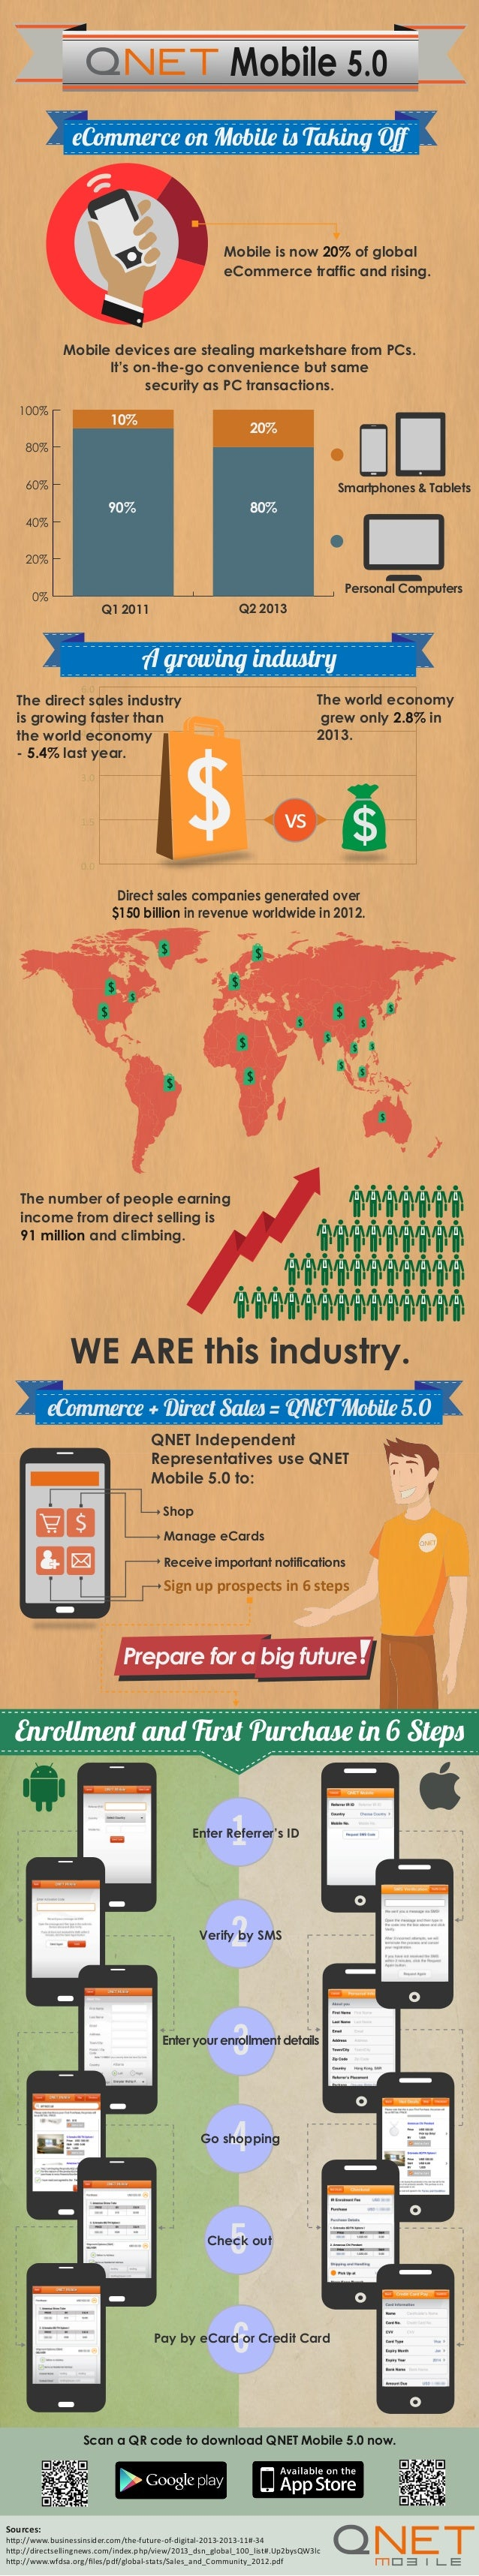 Mobile 5.0 eCommerce on Mobile is Taking Off  Mobile is now 20% of global eCommerce traffic and rising.  Mobile devices are...